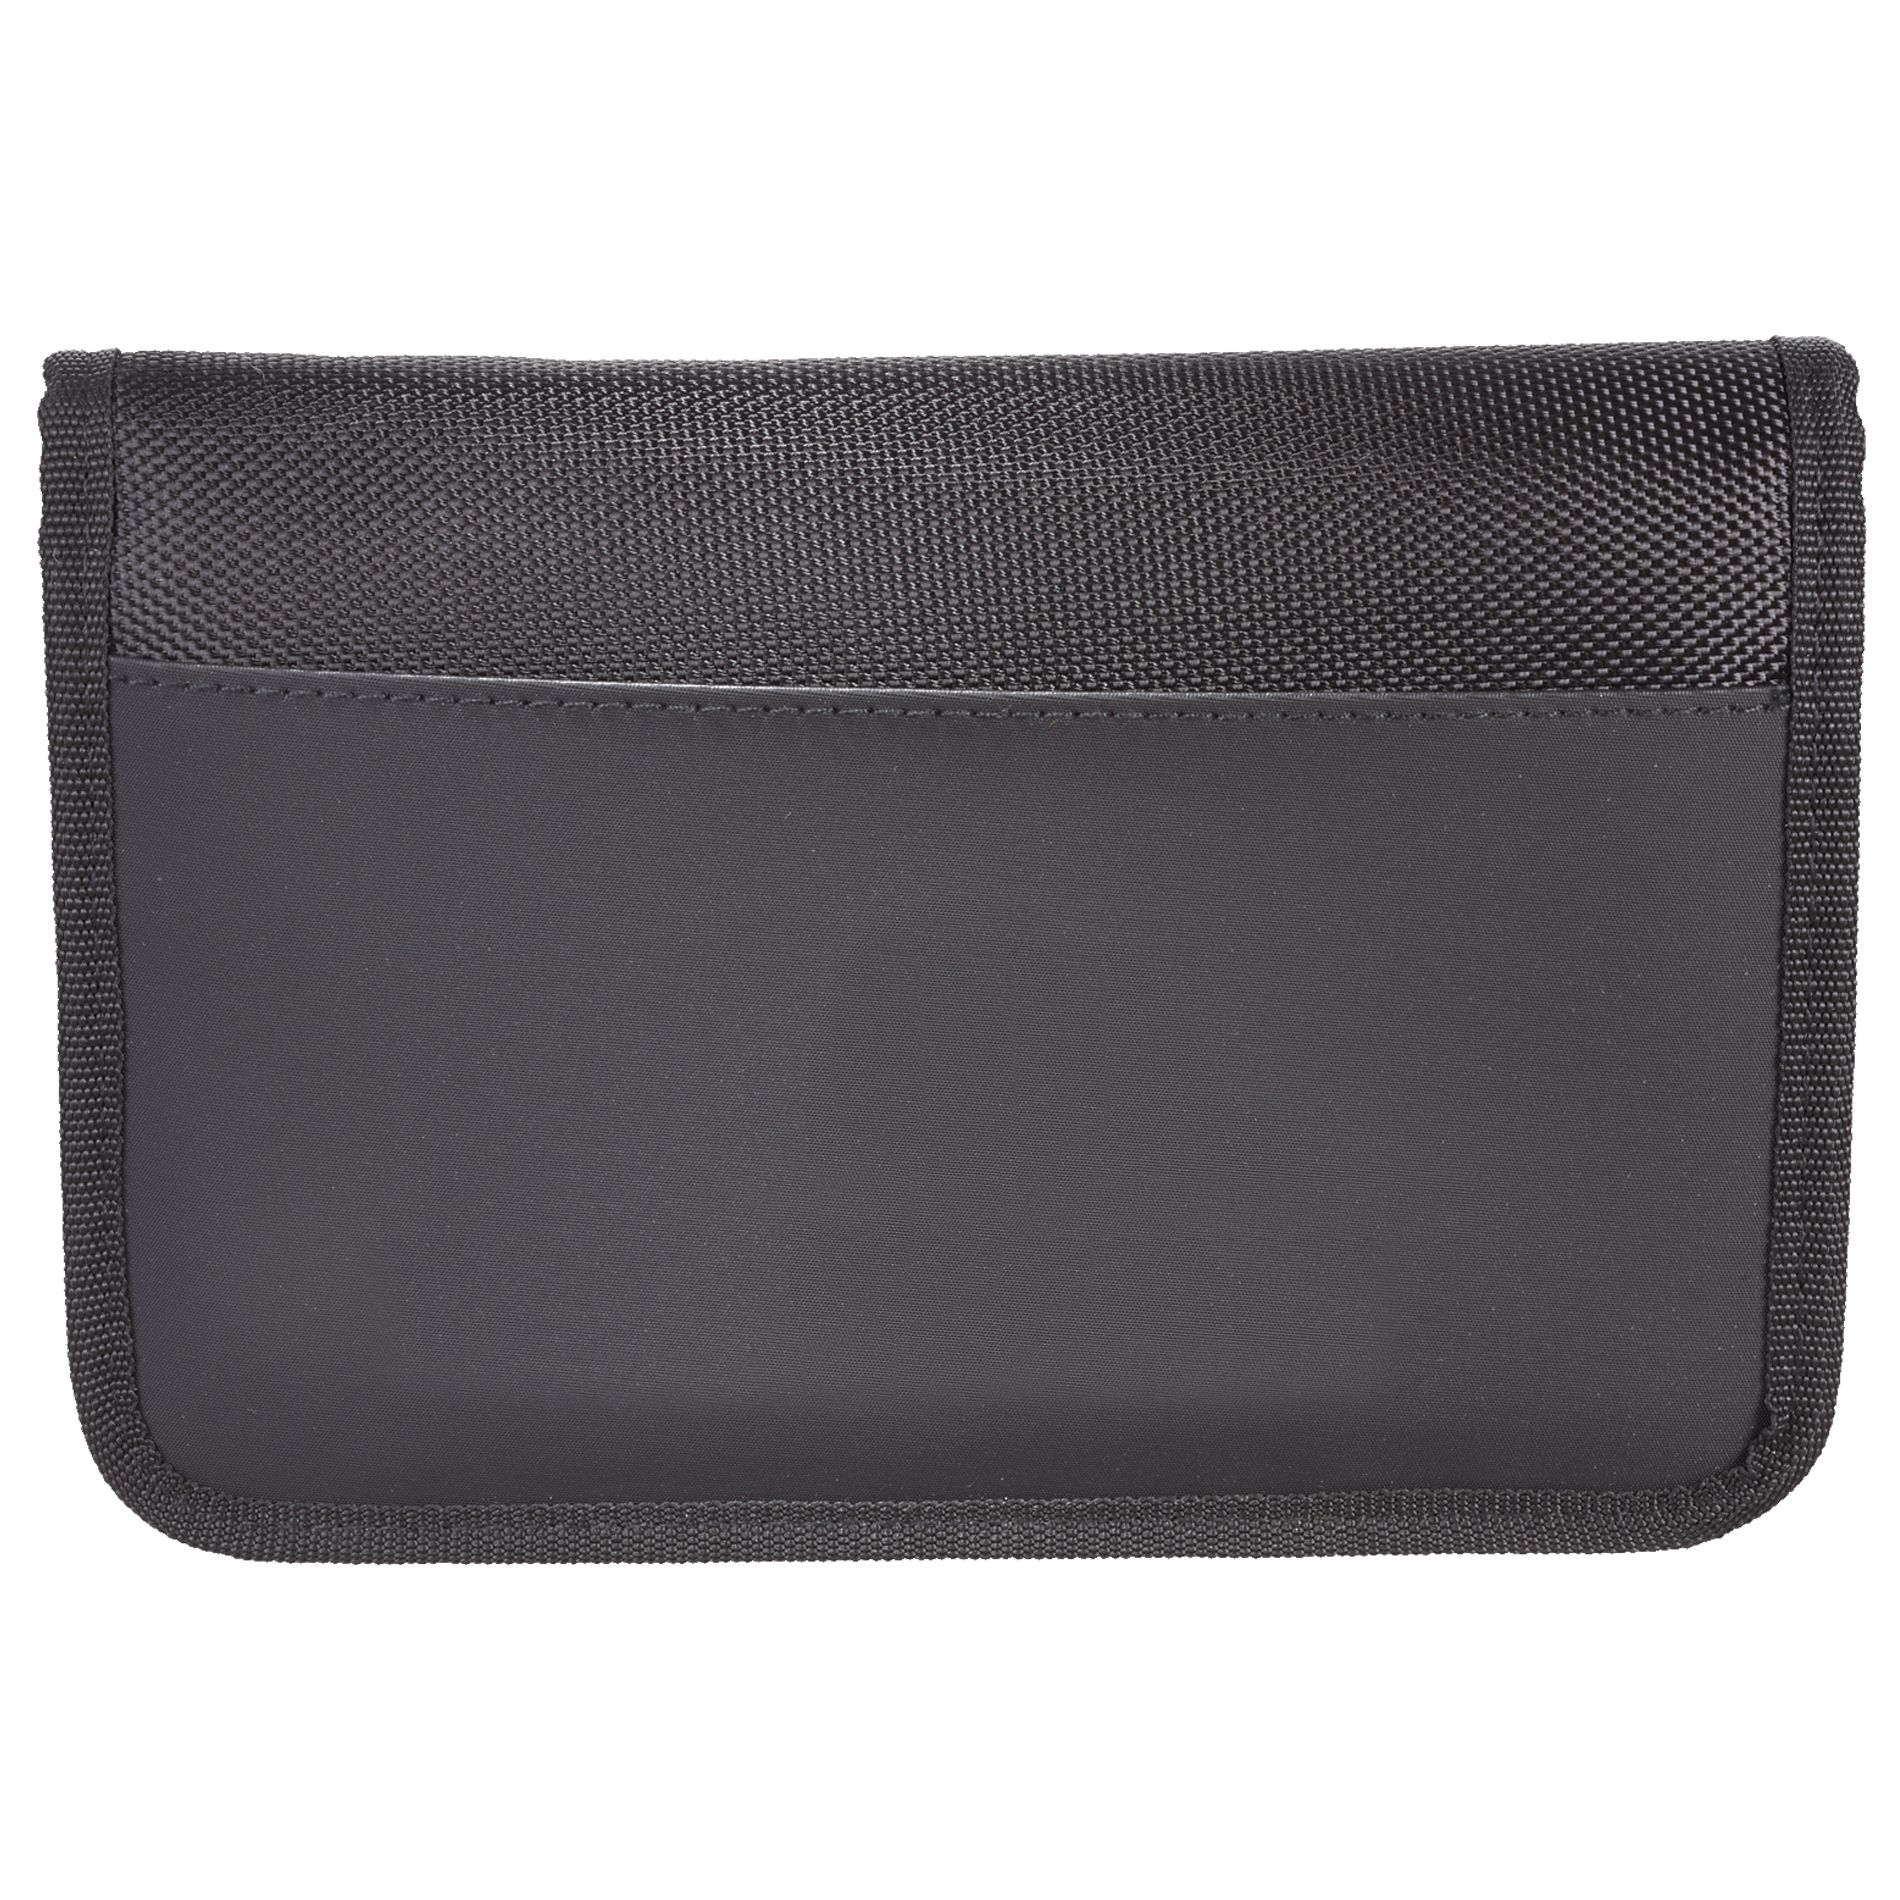 CARTERA ELLEVEN P/BATERIA TRAVEL   NG